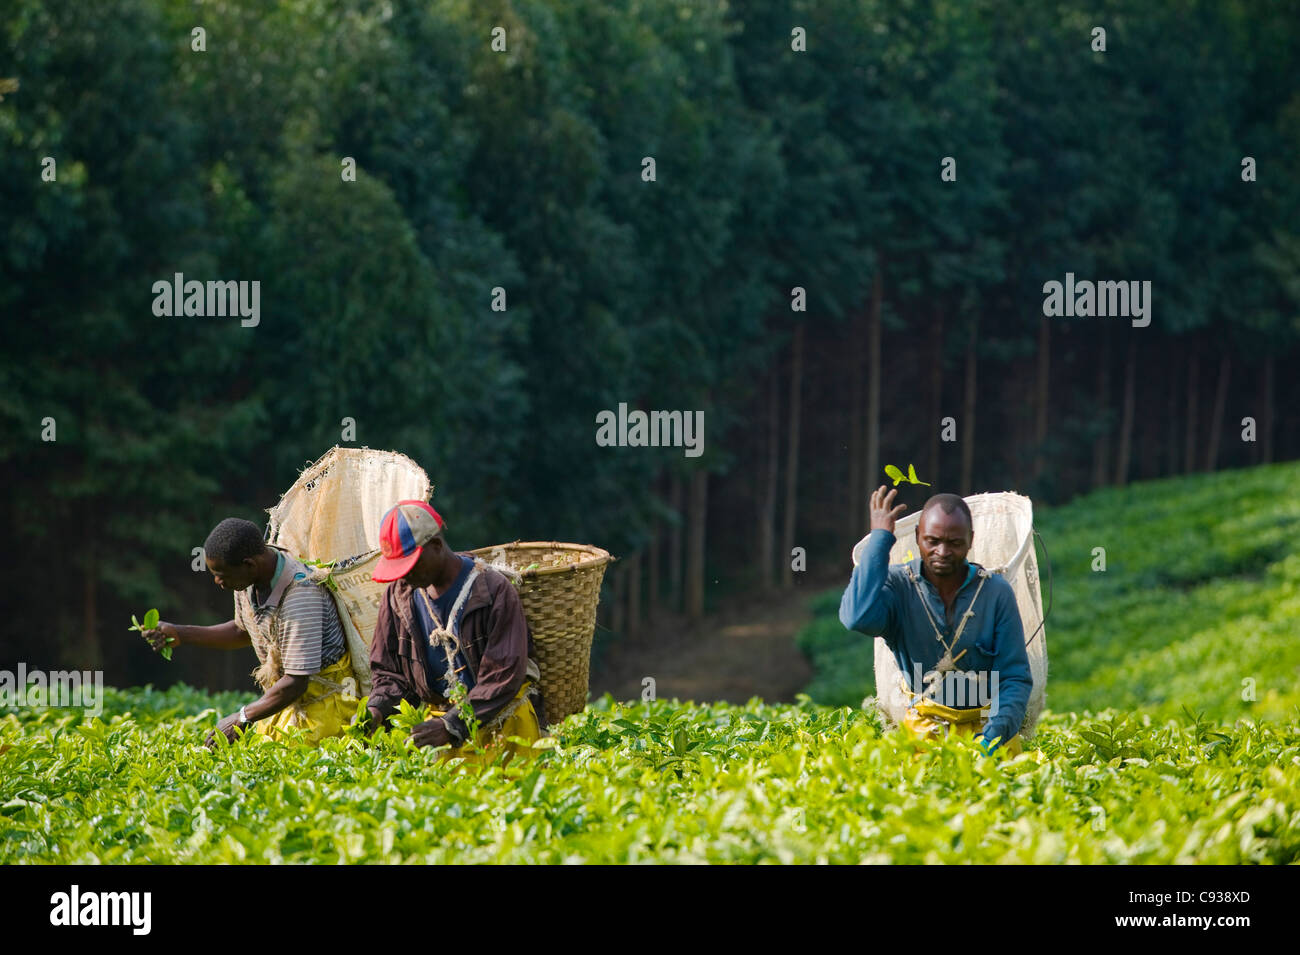 Malawi, Thyolo, Satemwa Tea Estate.  Workers plucking tea. - Stock Image